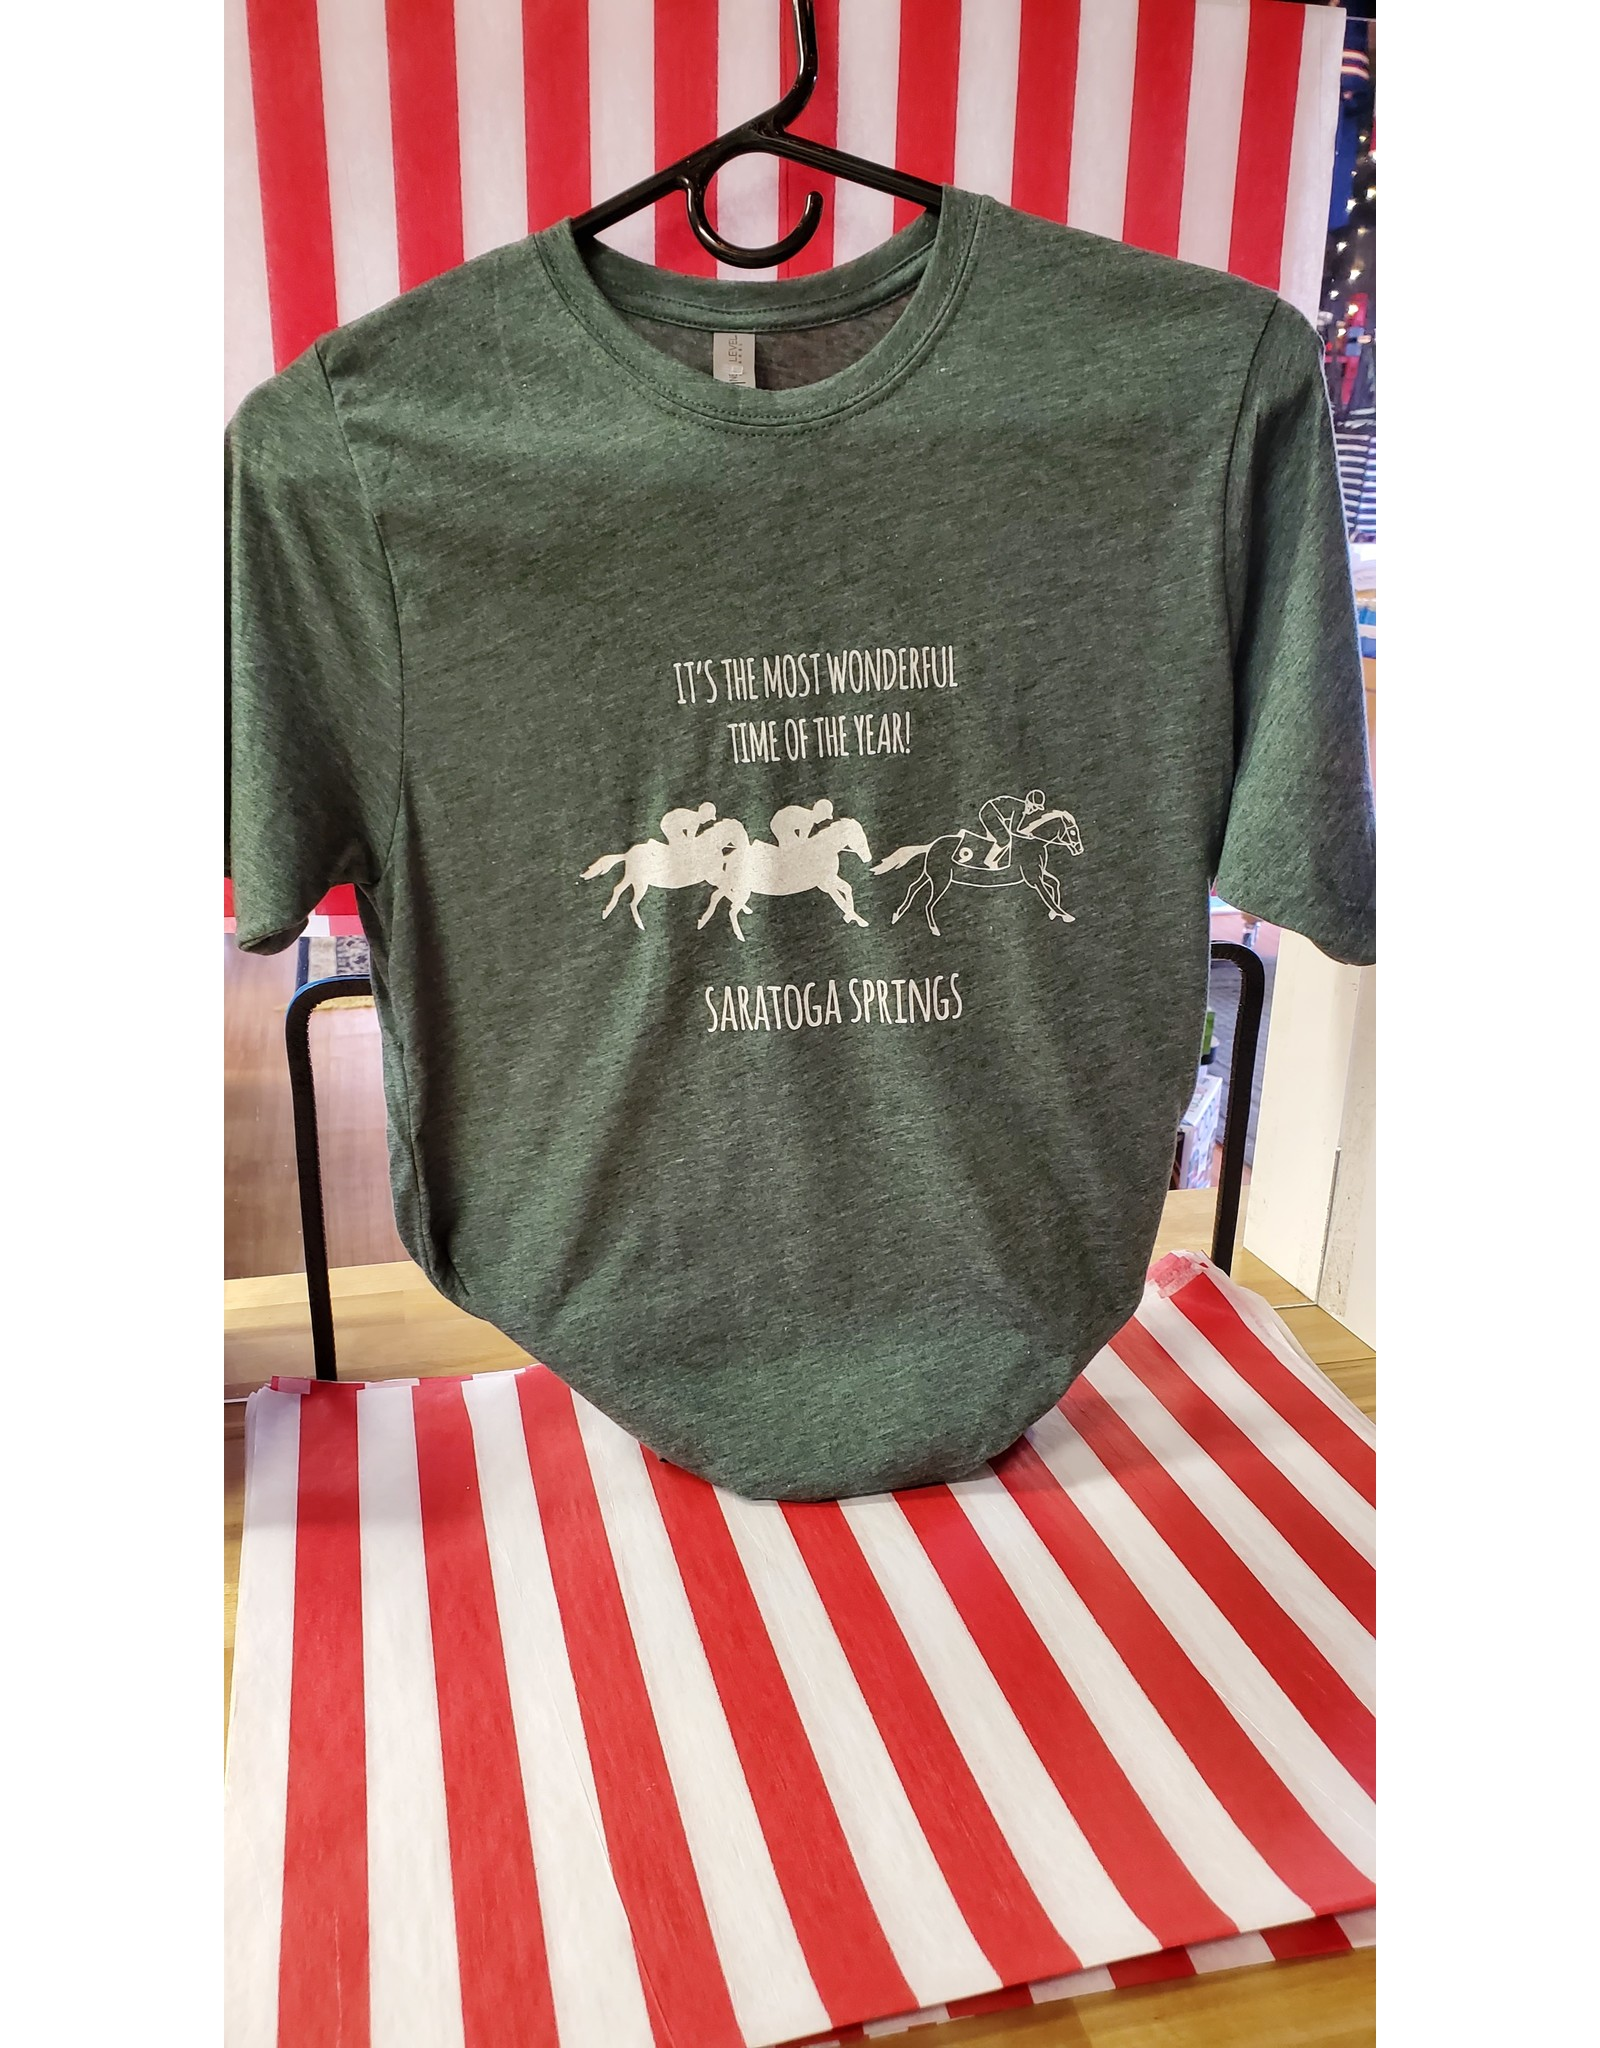 Tailgate and Party Original Tee Shirt - It's The Most Wonderful Time of the Year